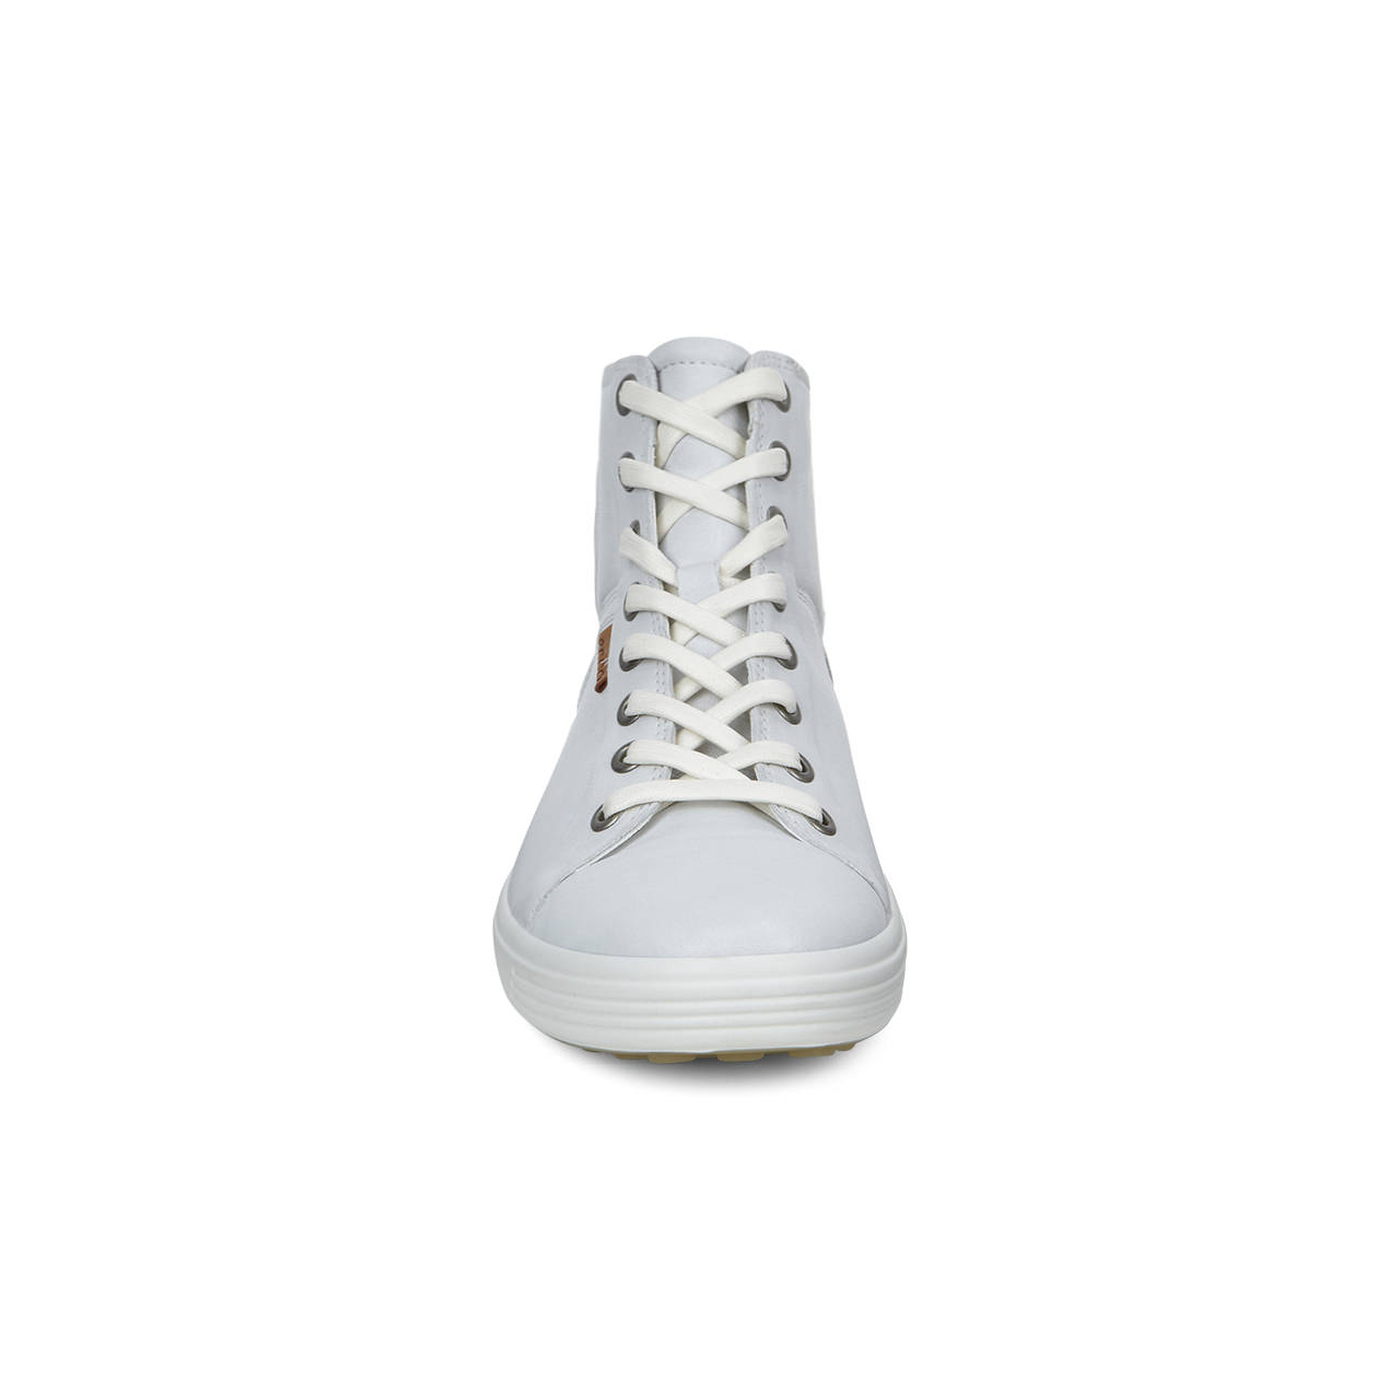 ECCO SOFT7 Womens High Top